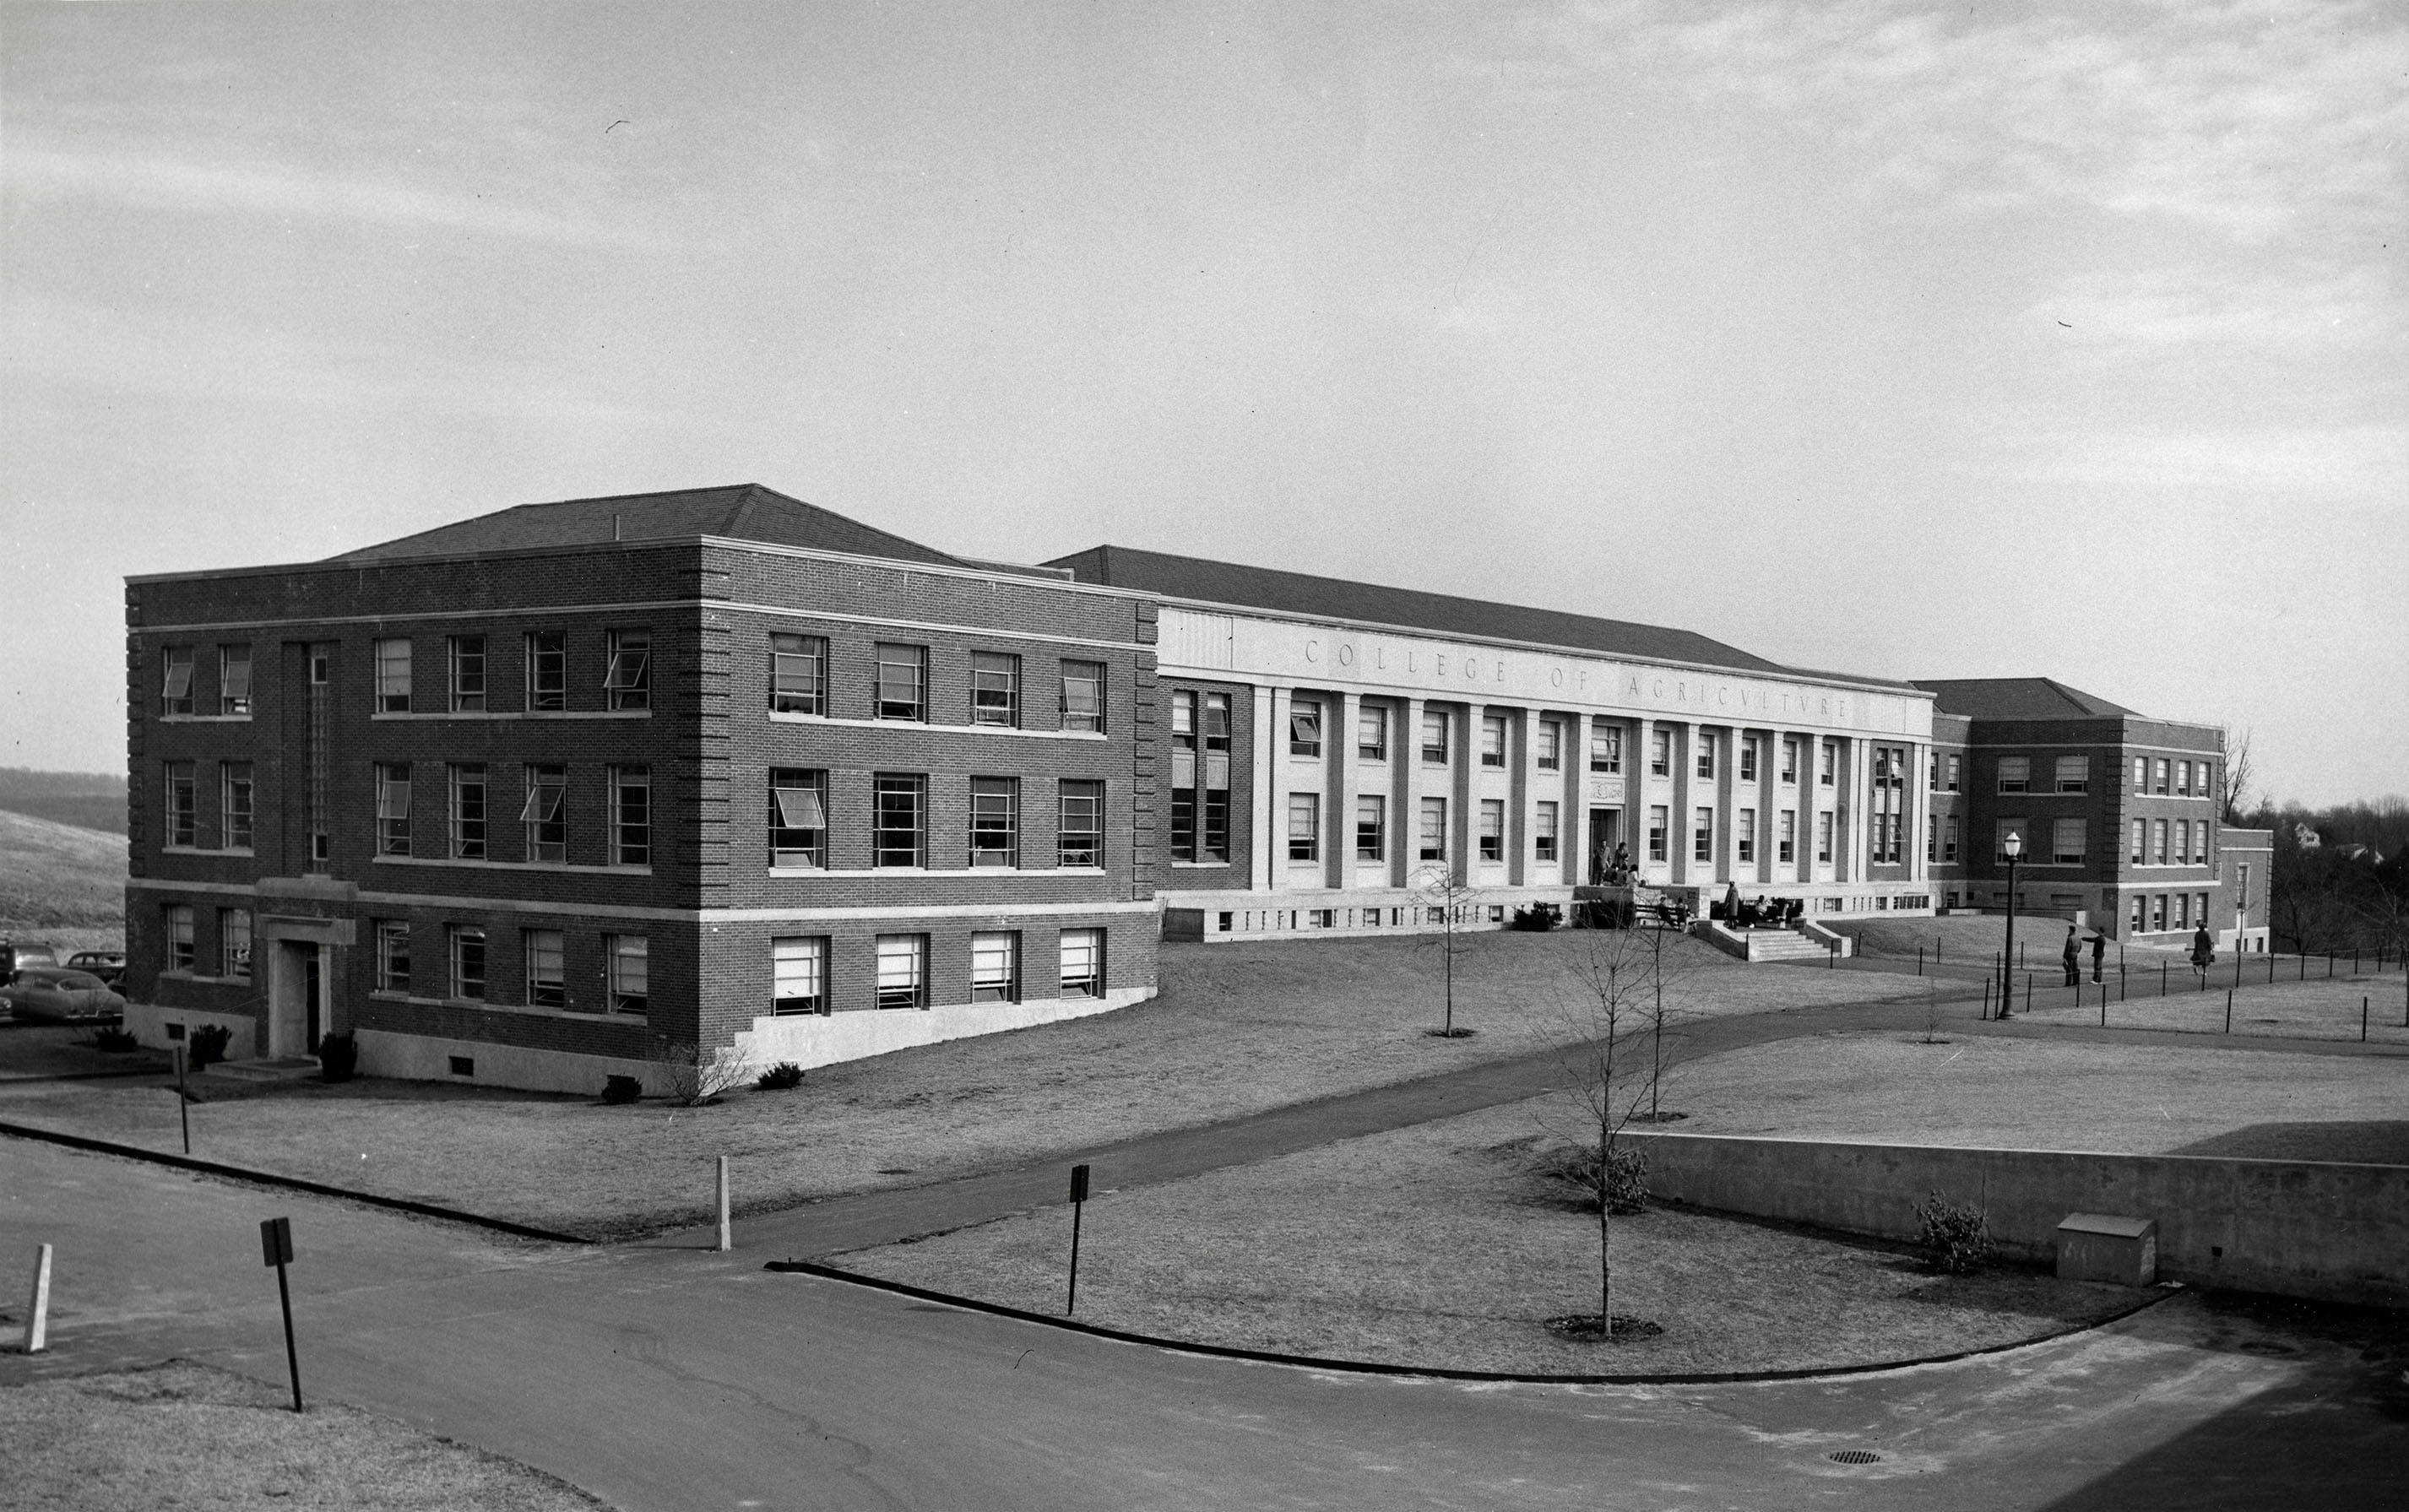 Wilfred B. Young Building, 1953